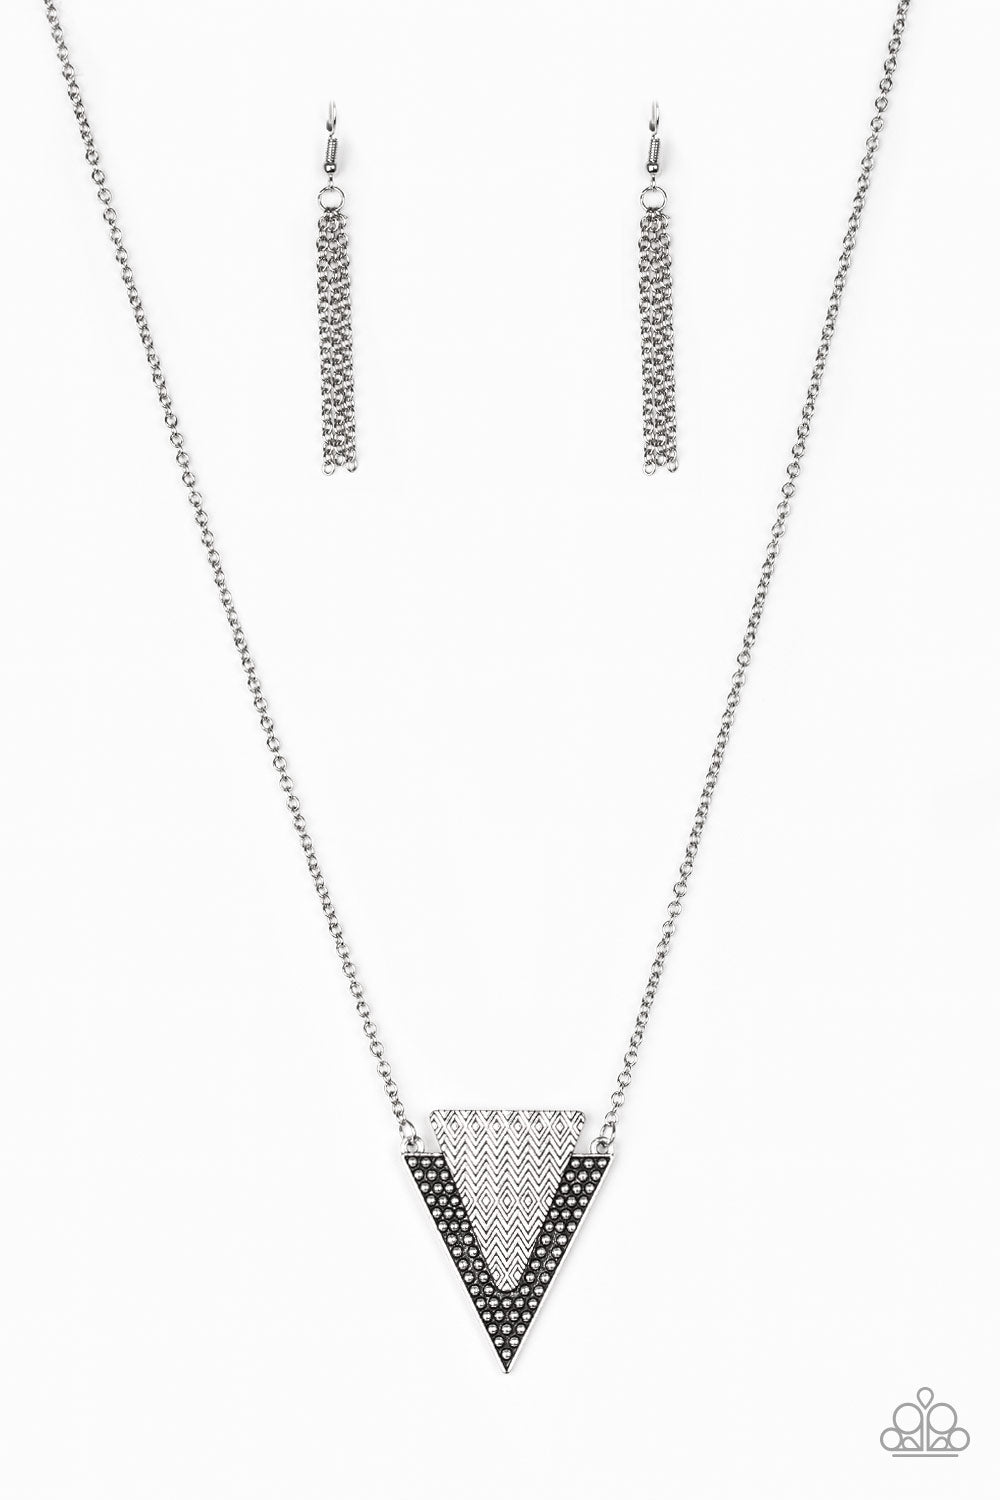 Paparazzi Ancient Arrow - Silver Necklace N-S6